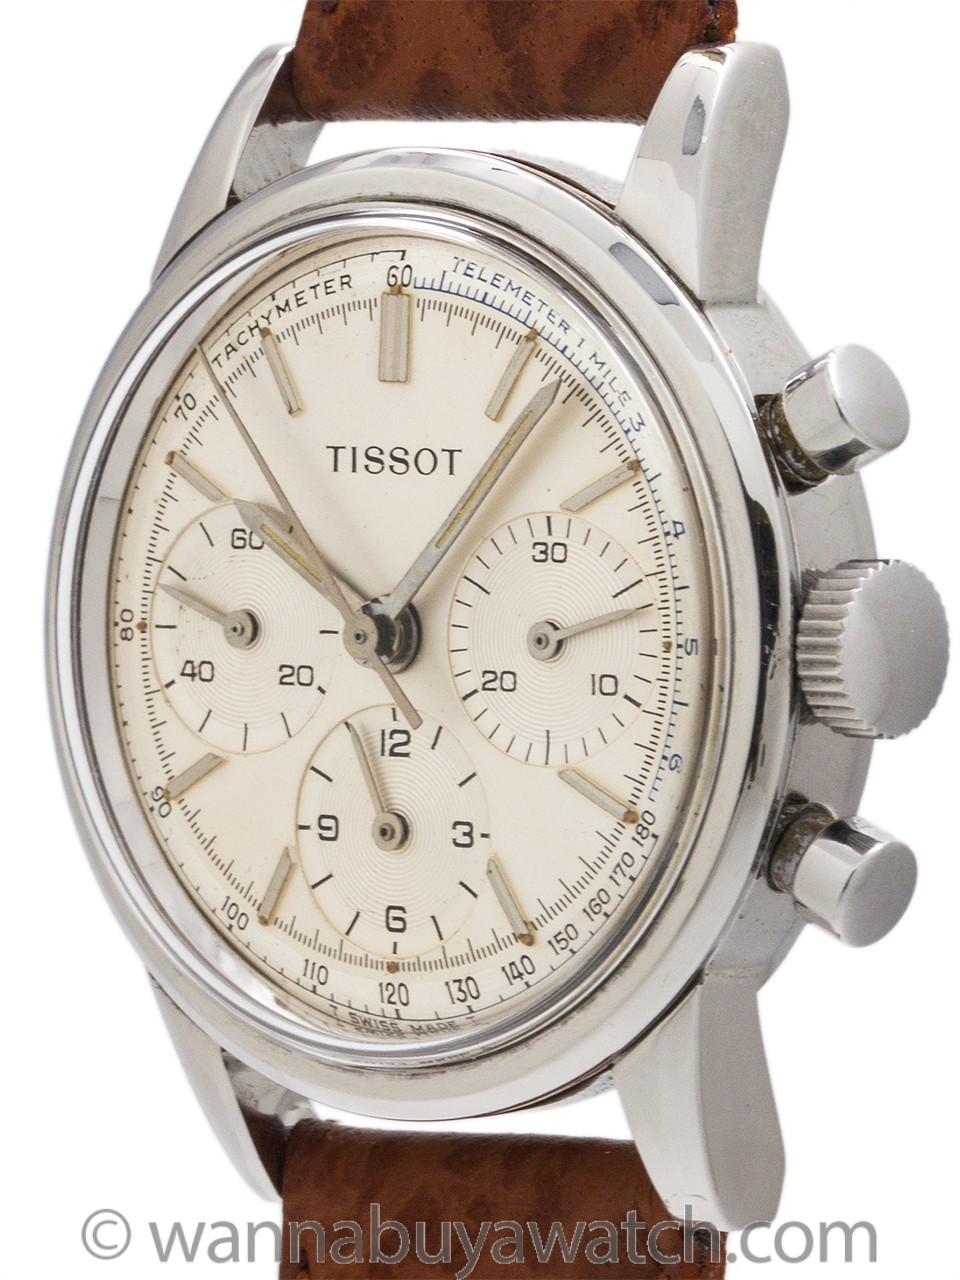 Tissot Triple Registers Stainless Steel Chronograph circa 1960's